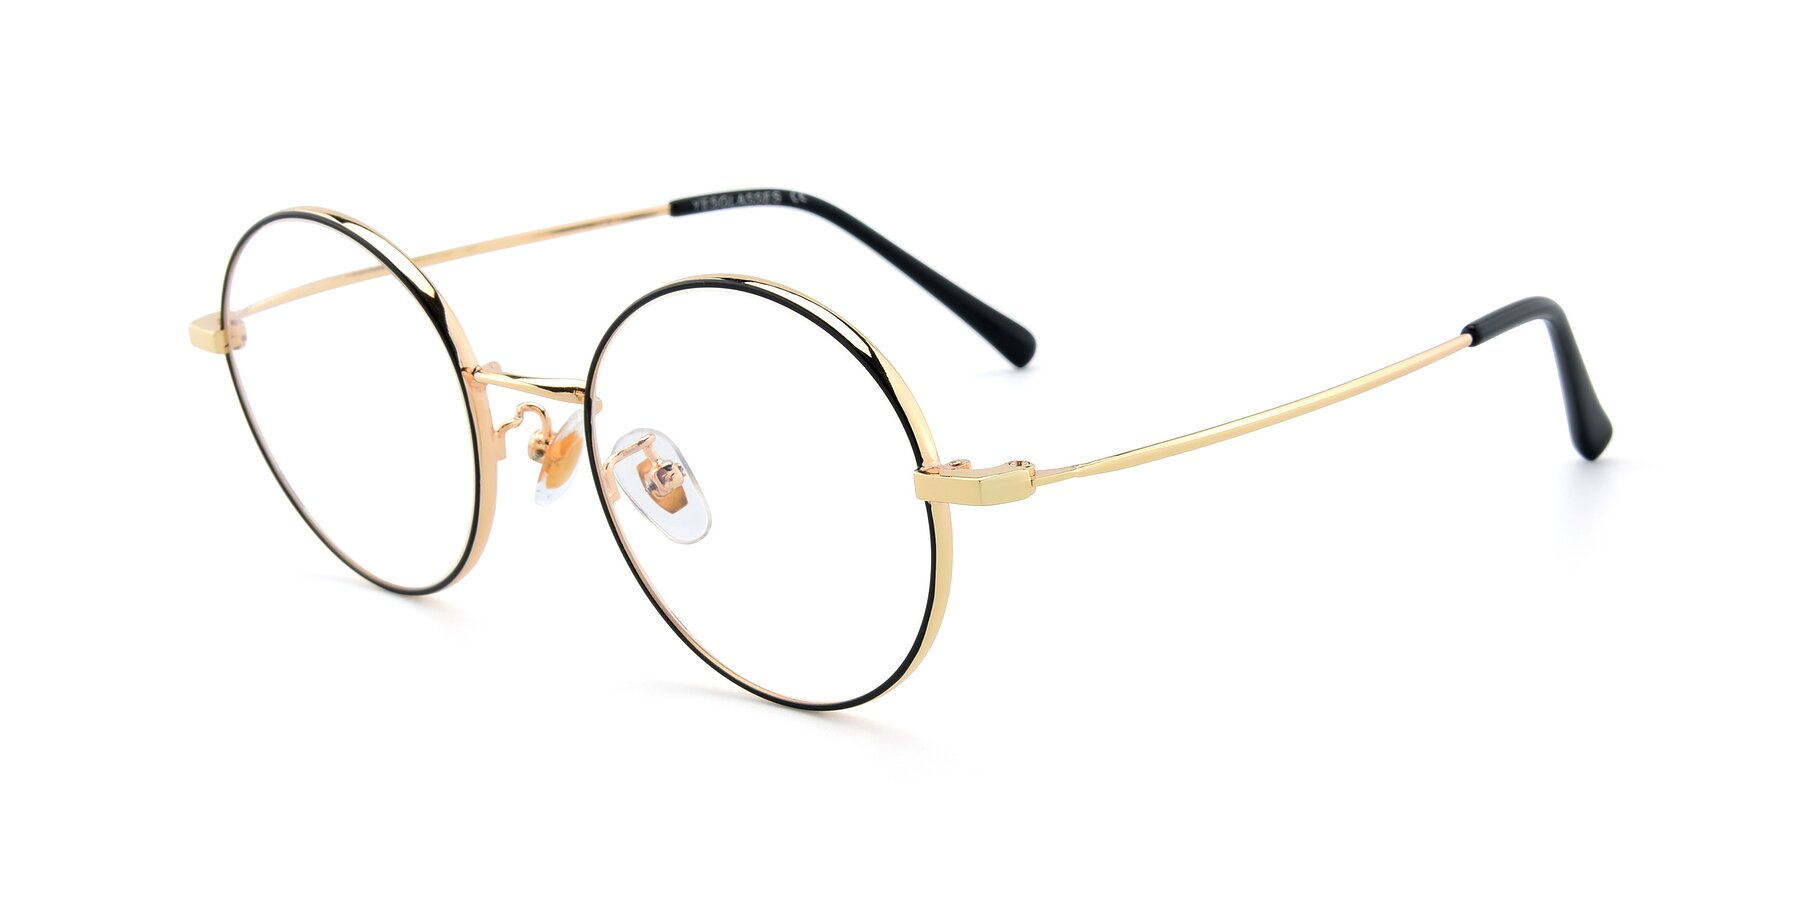 Angle of LT2096 in Black-Gold with Clear Eyeglass Lenses